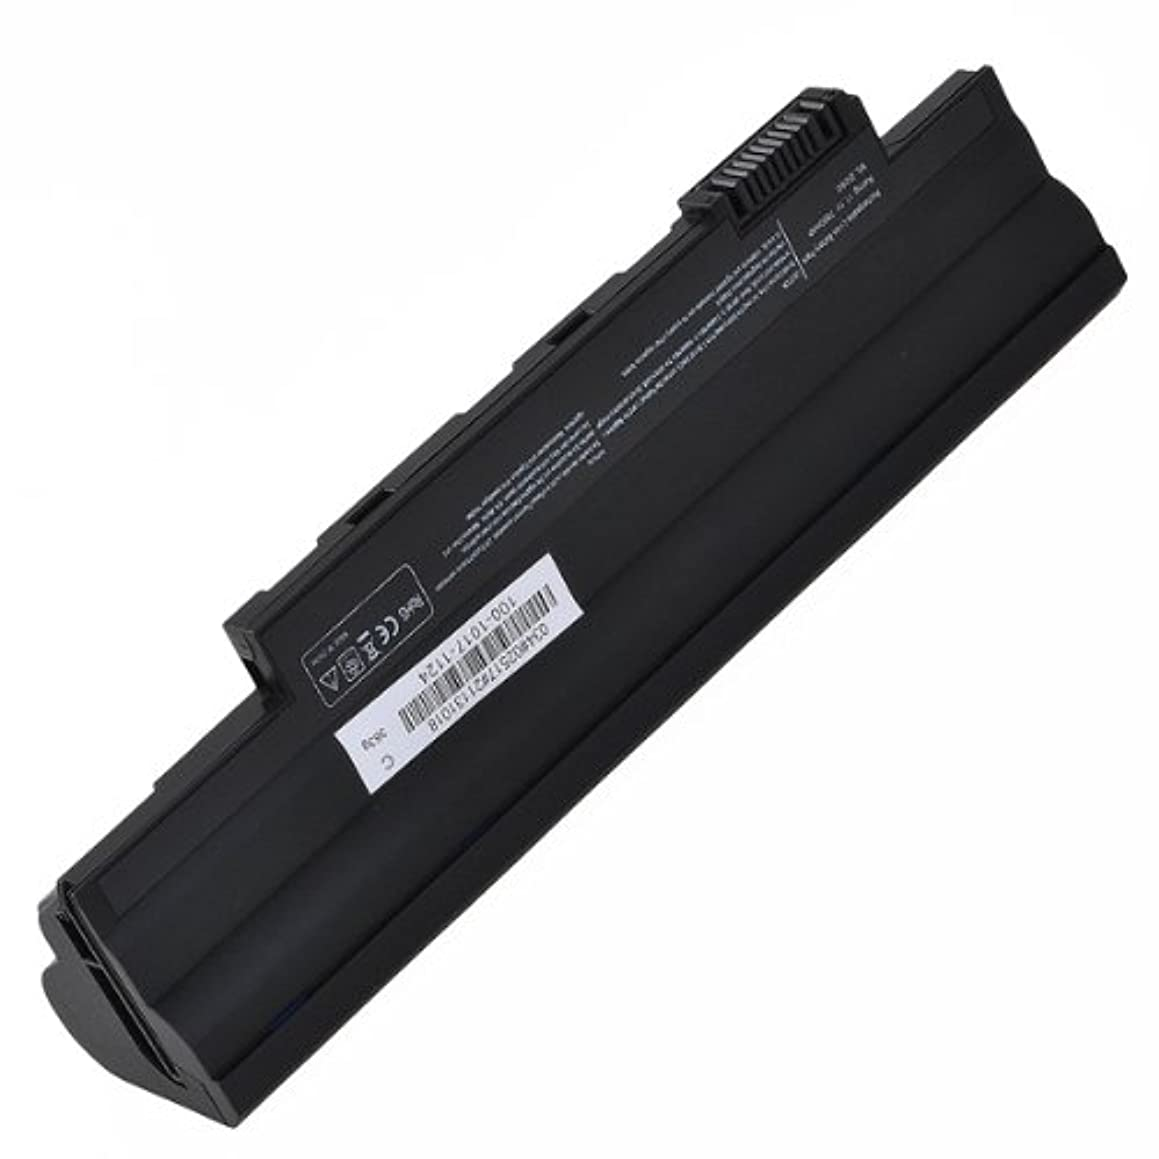 ATC Replace Battery Now 9 Cell 7800mAh Li Ion Brand New High Capacity Laptop Notebook Replacement Battery for Aspire One AOD260-2919 Aspire One AOD260-2680 Aspire One AOD260-2576 Aspire One AOD260-2571 Aspire One AOD260-2455 Aspire One AOD260-2440 Aspire One AOD260-2380 Aspire One AOD260-23797 Aspire One AOD260-2365 Aspire One AOD260-2344 Aspire One AOD260-2207 Aspire One AOD260-2203 Aspire One AOD260-2028, Compatible with AL10A31 AL10B31 AL10G31 LC.BTP00.128 LC.BTP00.129